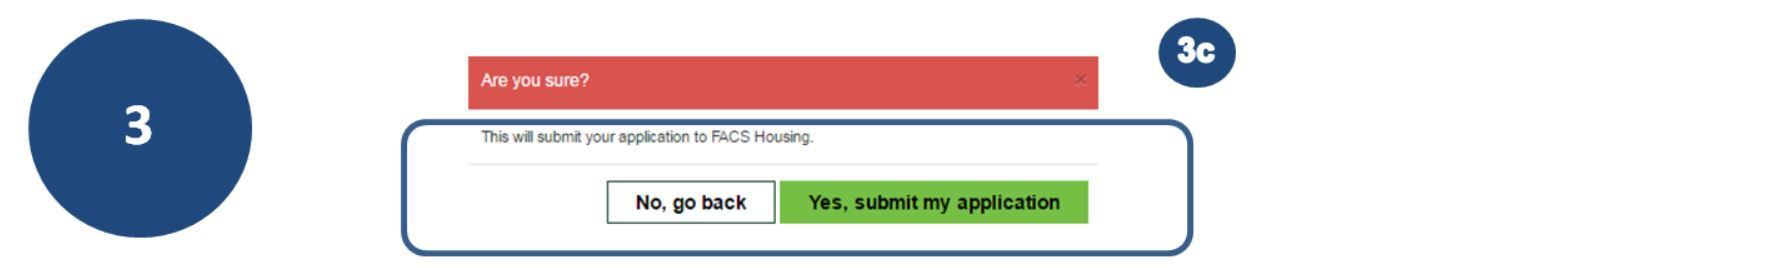 3c. If you Accept the details, you will be asked to submit your application.